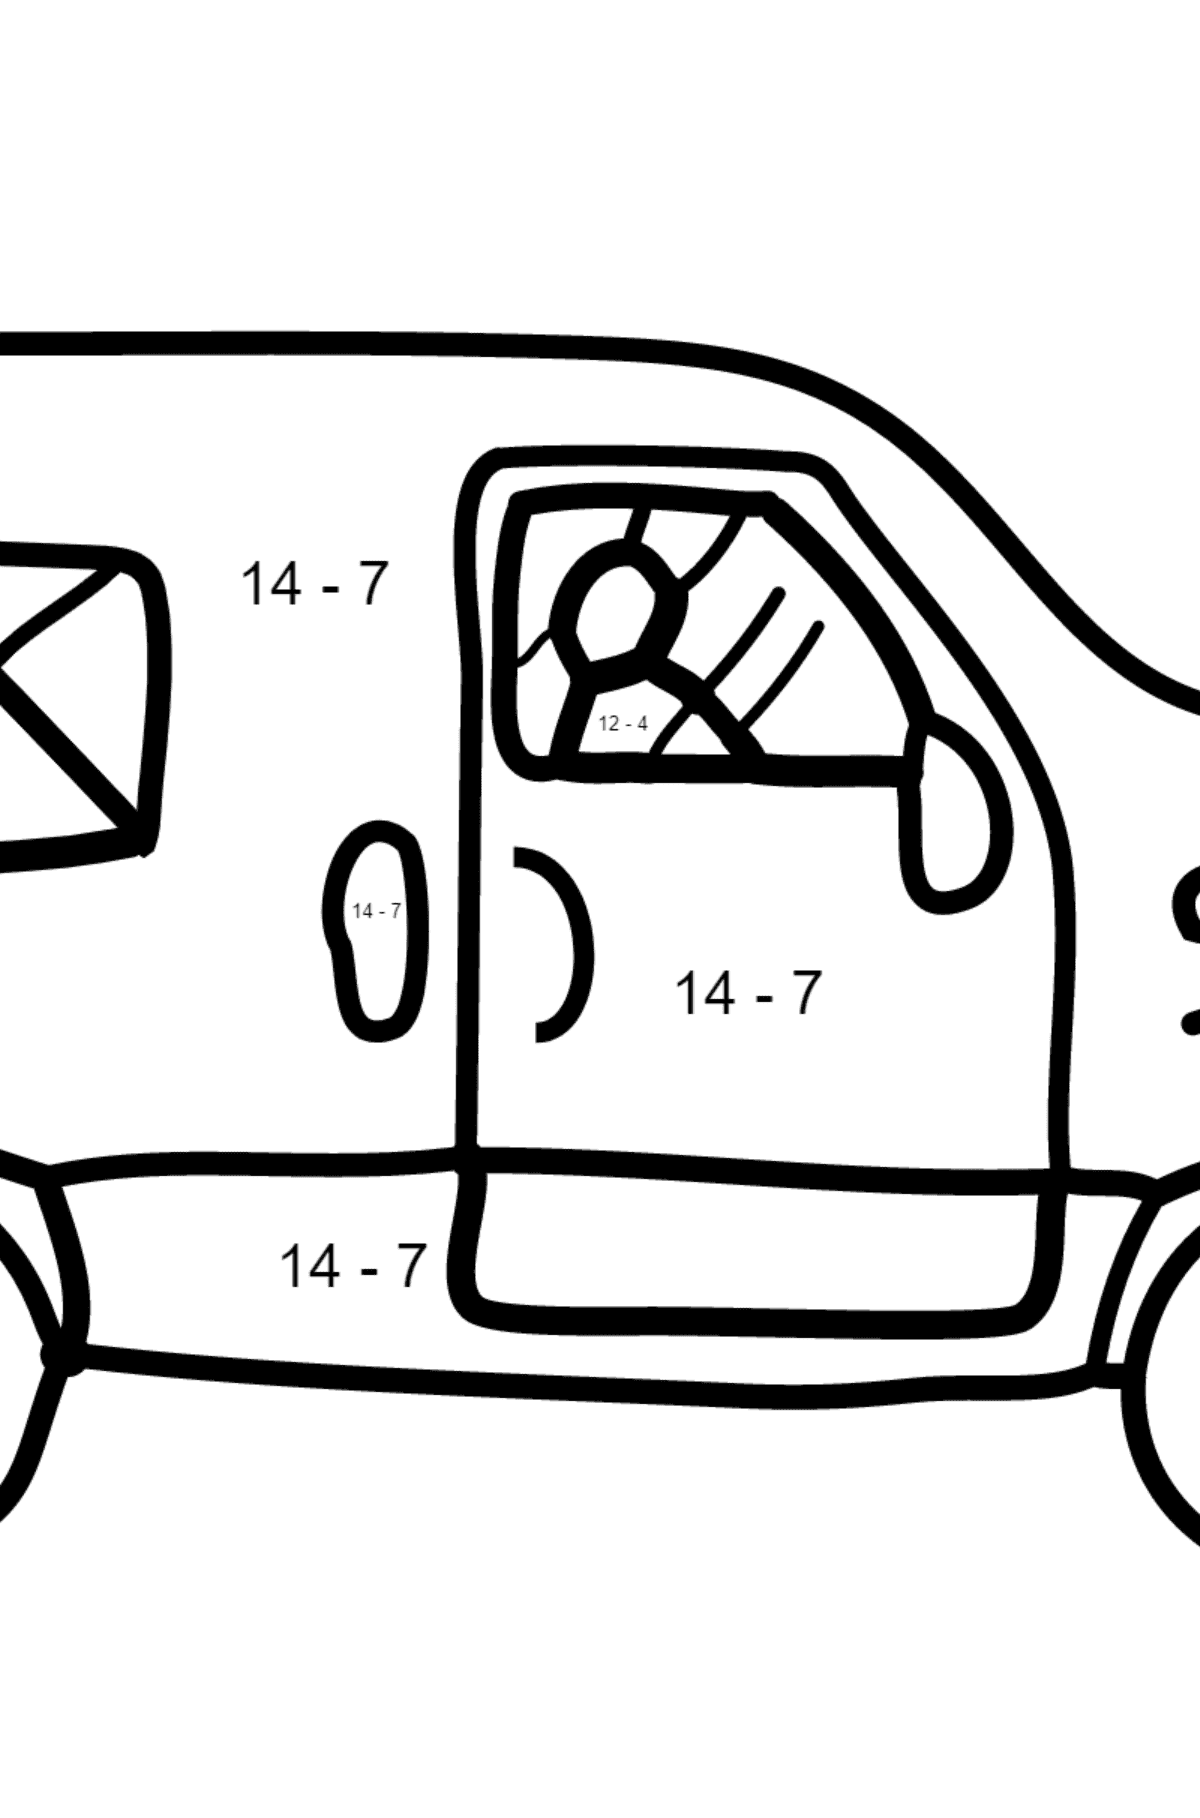 Coloring Page - A Car is Carrying Mail - Math Coloring - Subtraction for Children